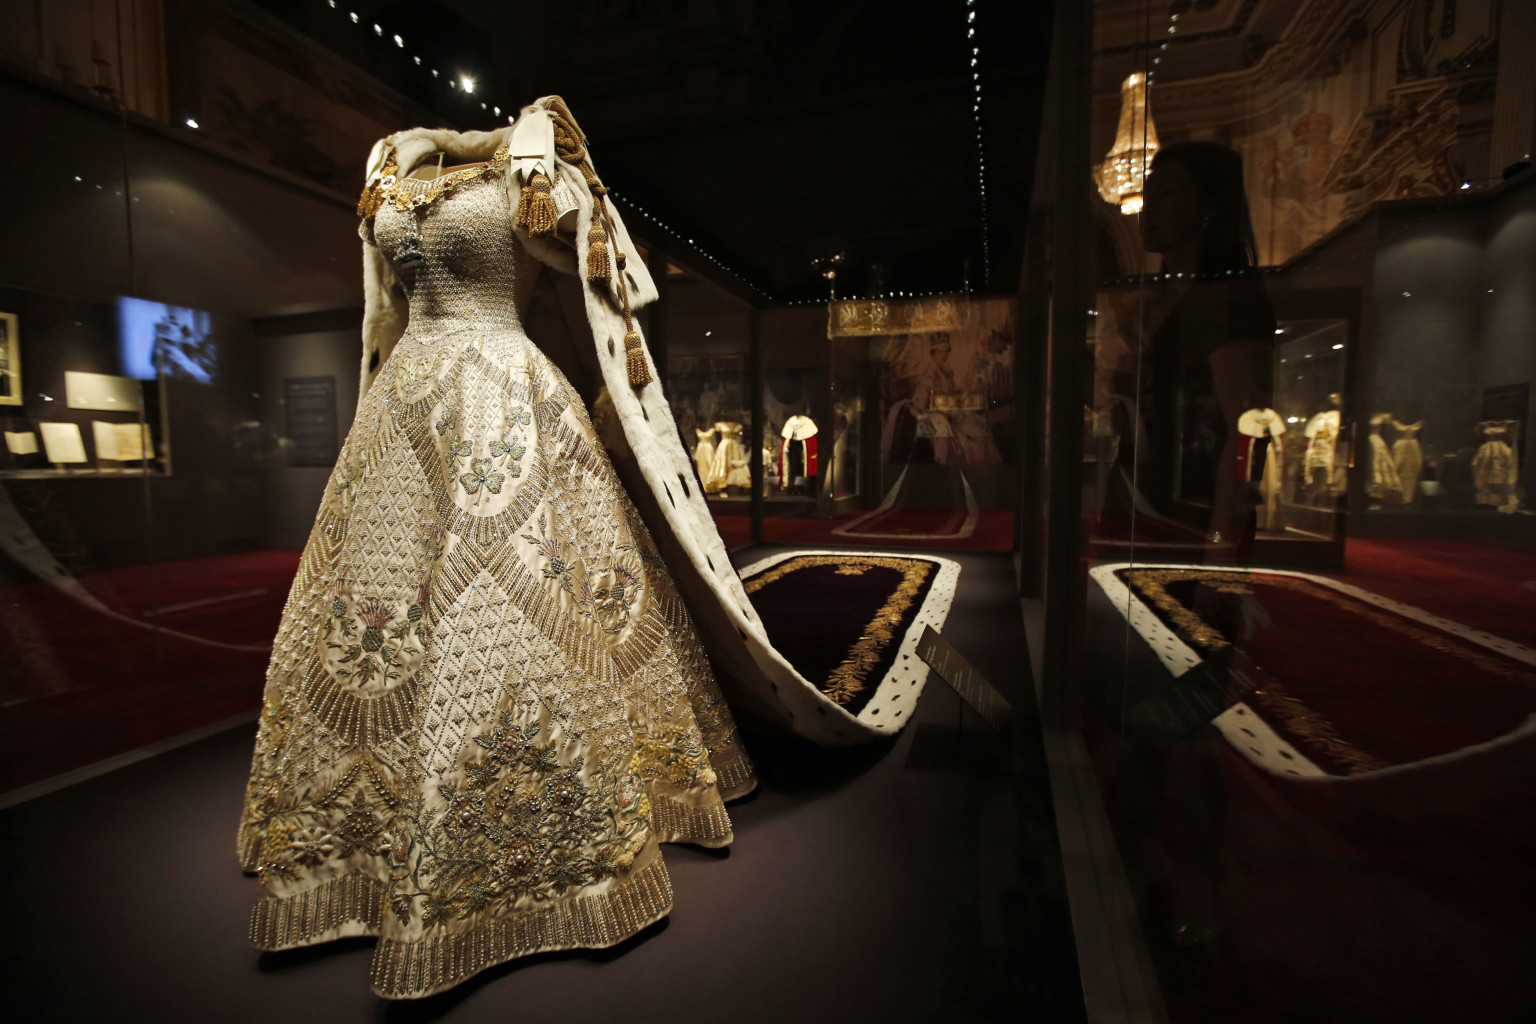 Queen Elizabeth's Coronation Dress Included Nod To Canada ...Queen Elizabeth Coronation Dress